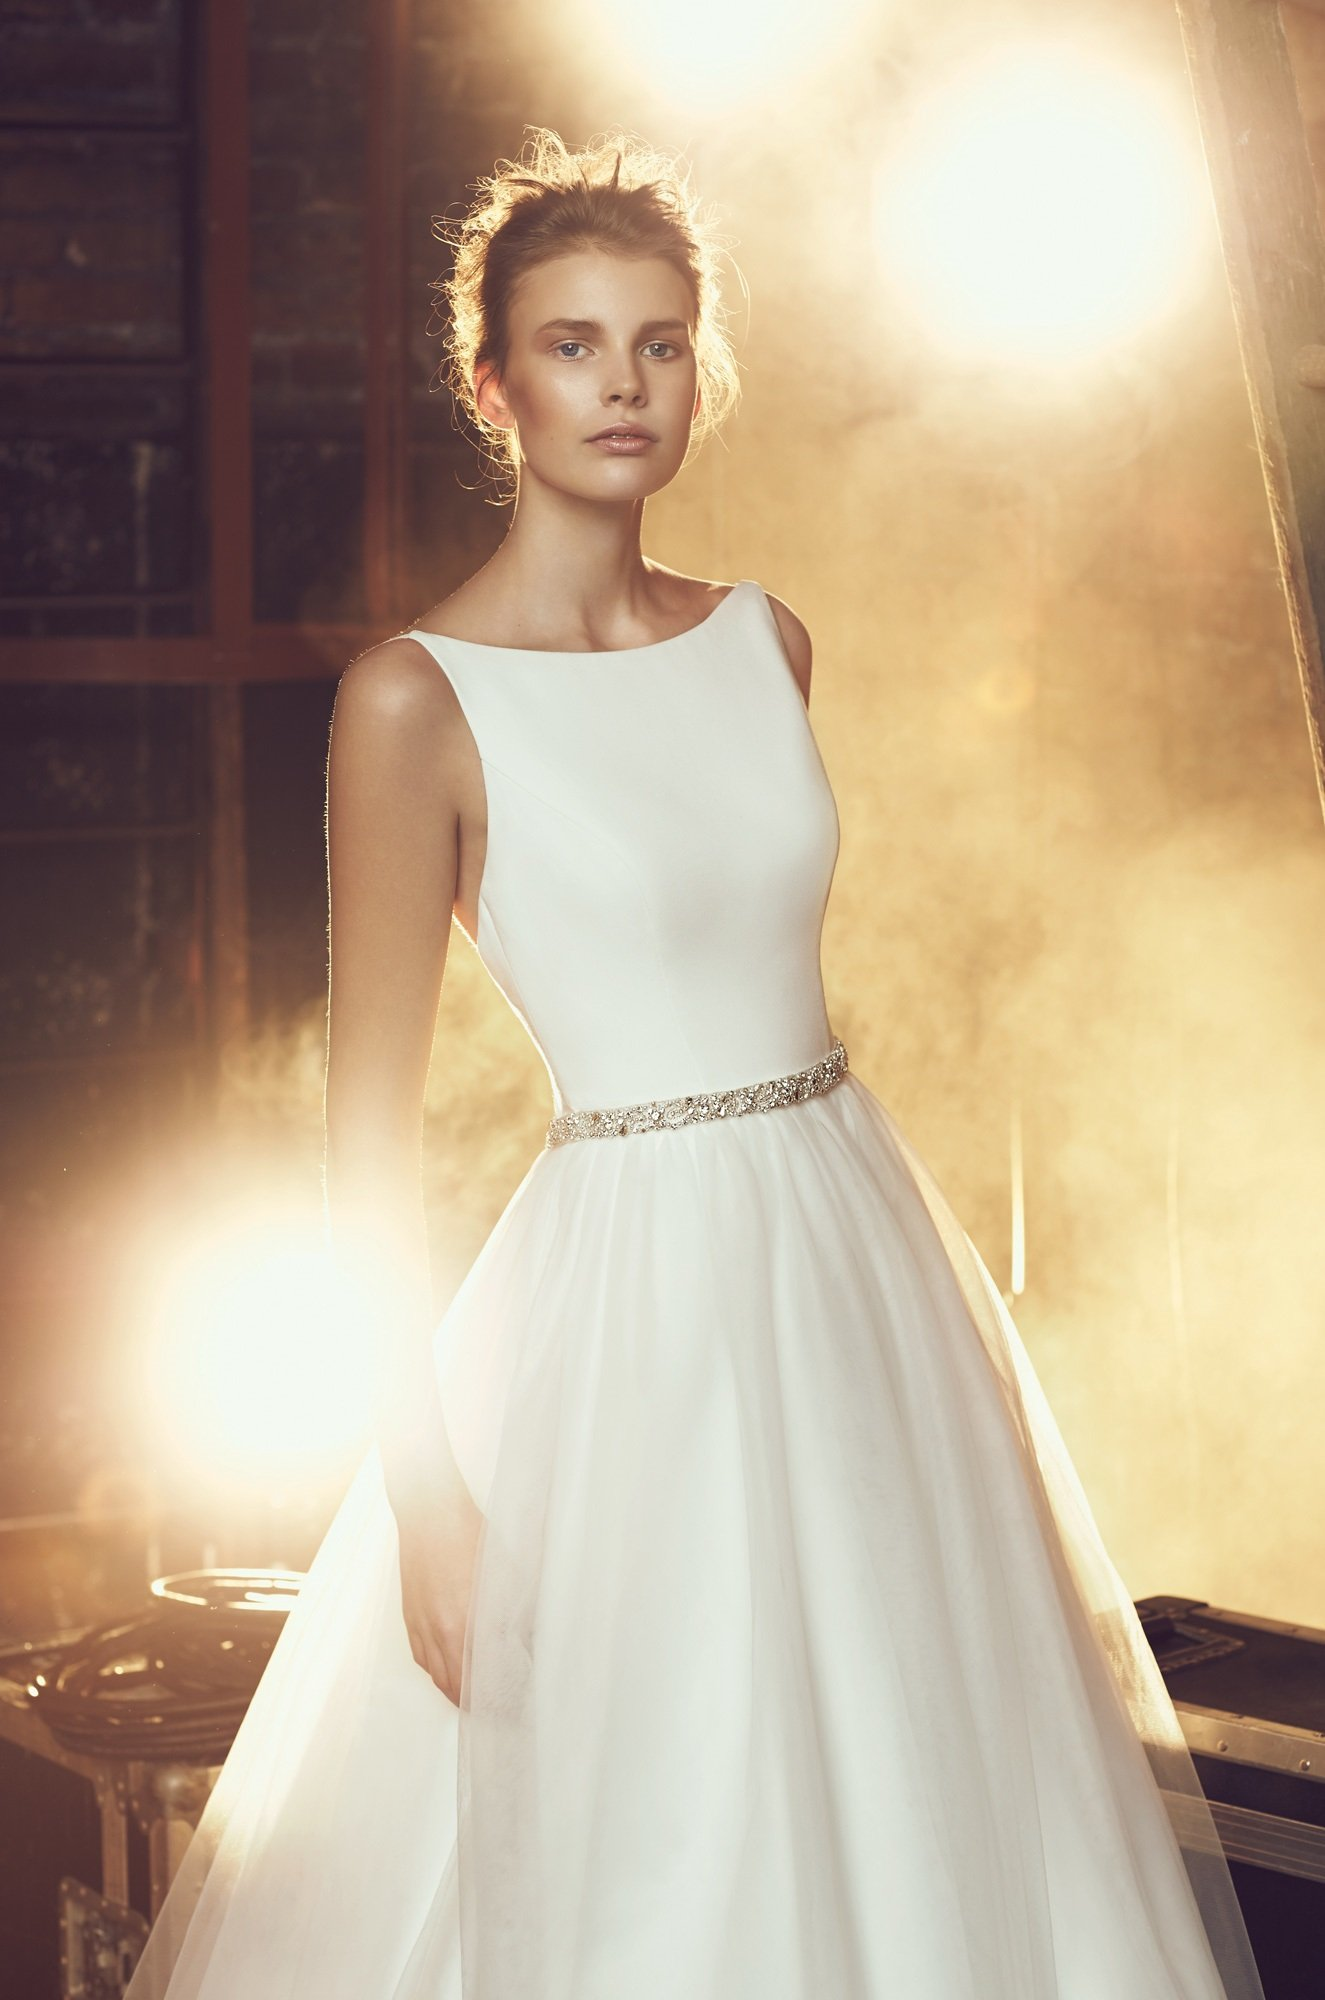 Tulle skirt wedding dress style 2079 mikaella bridal for Wedding dresses with tulle